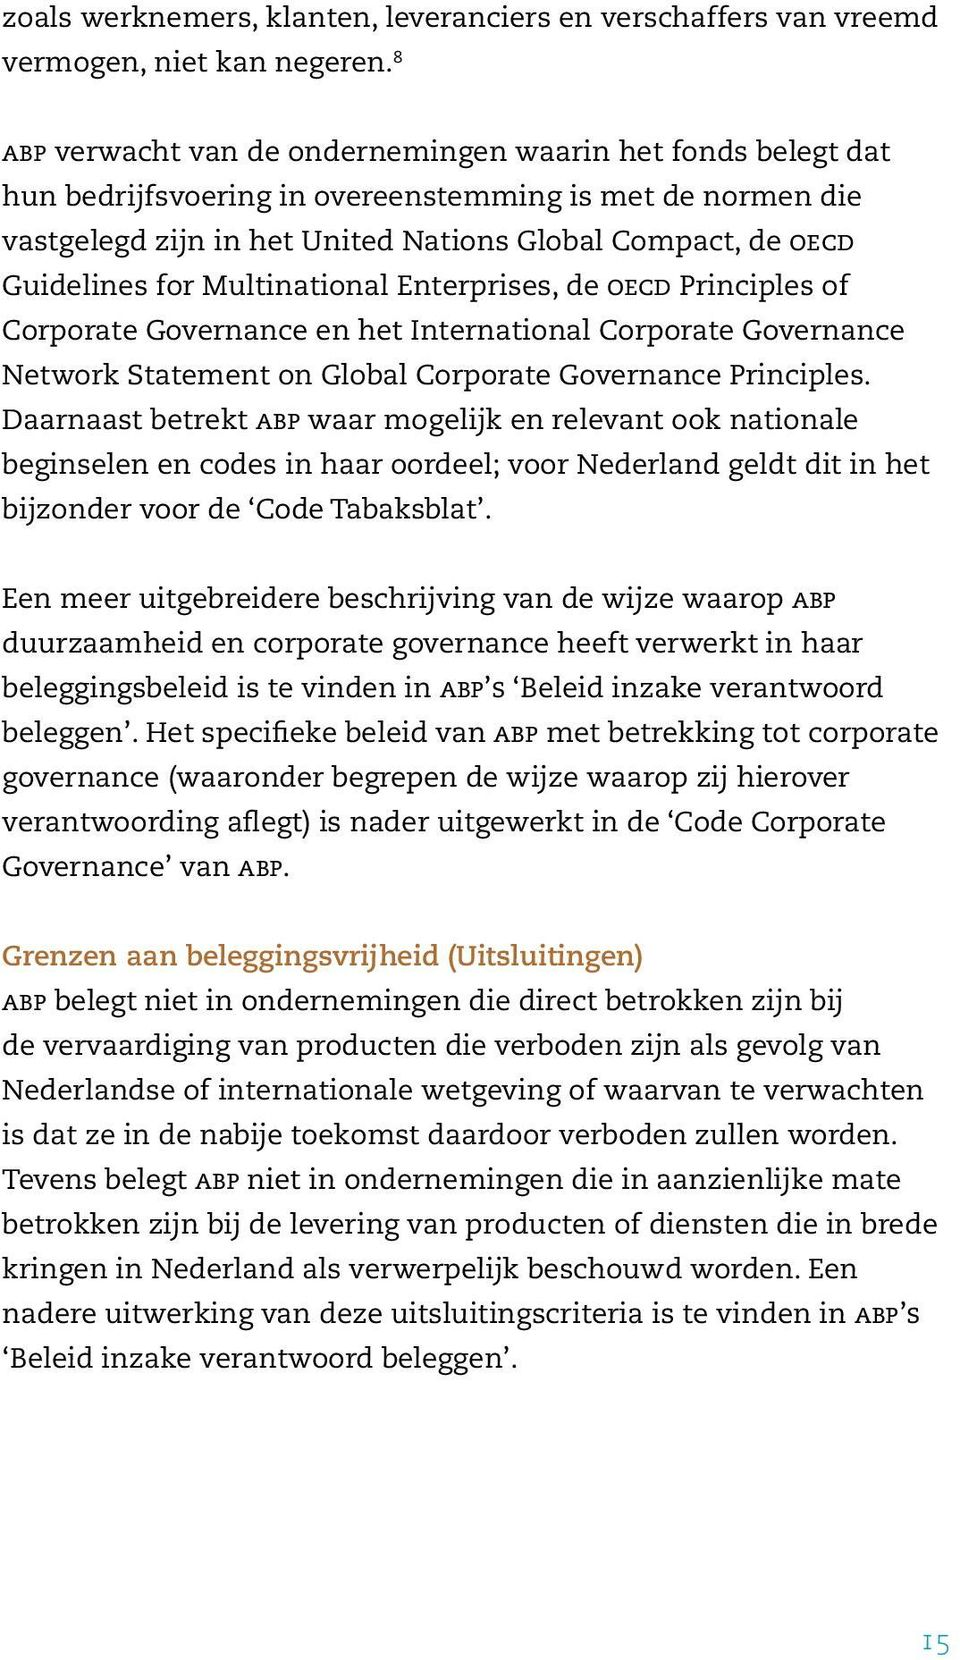 for Multinational Enterprises, de OECD Principles of Corporate Governance en het International Corporate Governance Network Statement on Global Corporate Governance Principles.